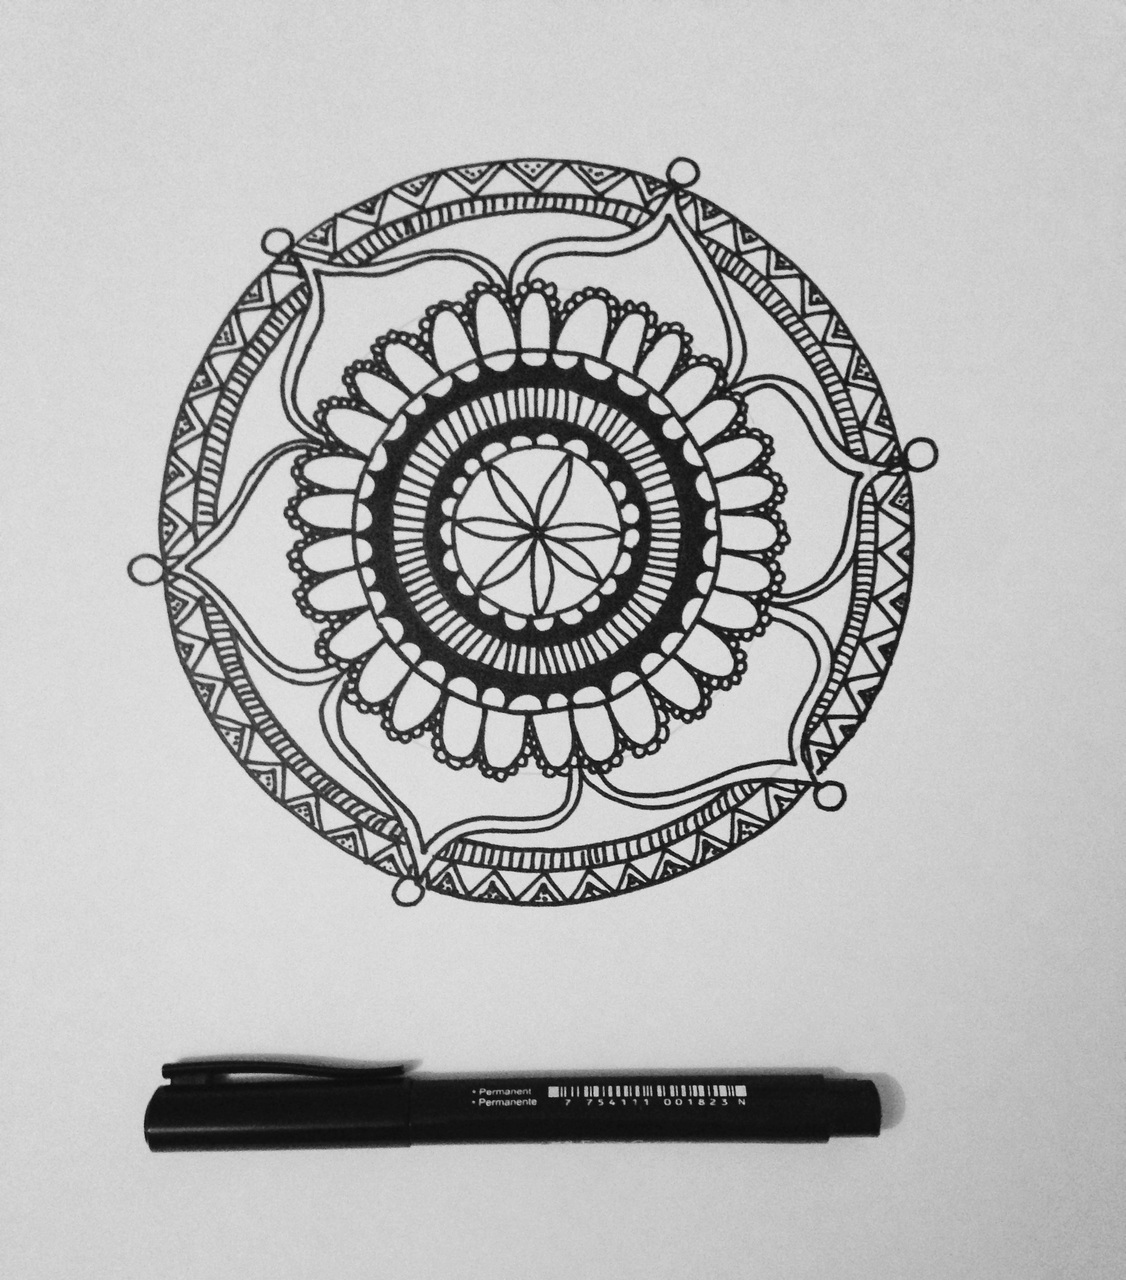 art, arte, black and white, by, chile, dibujos, draw, mandala, paper, rate, whatever, darla abrigo